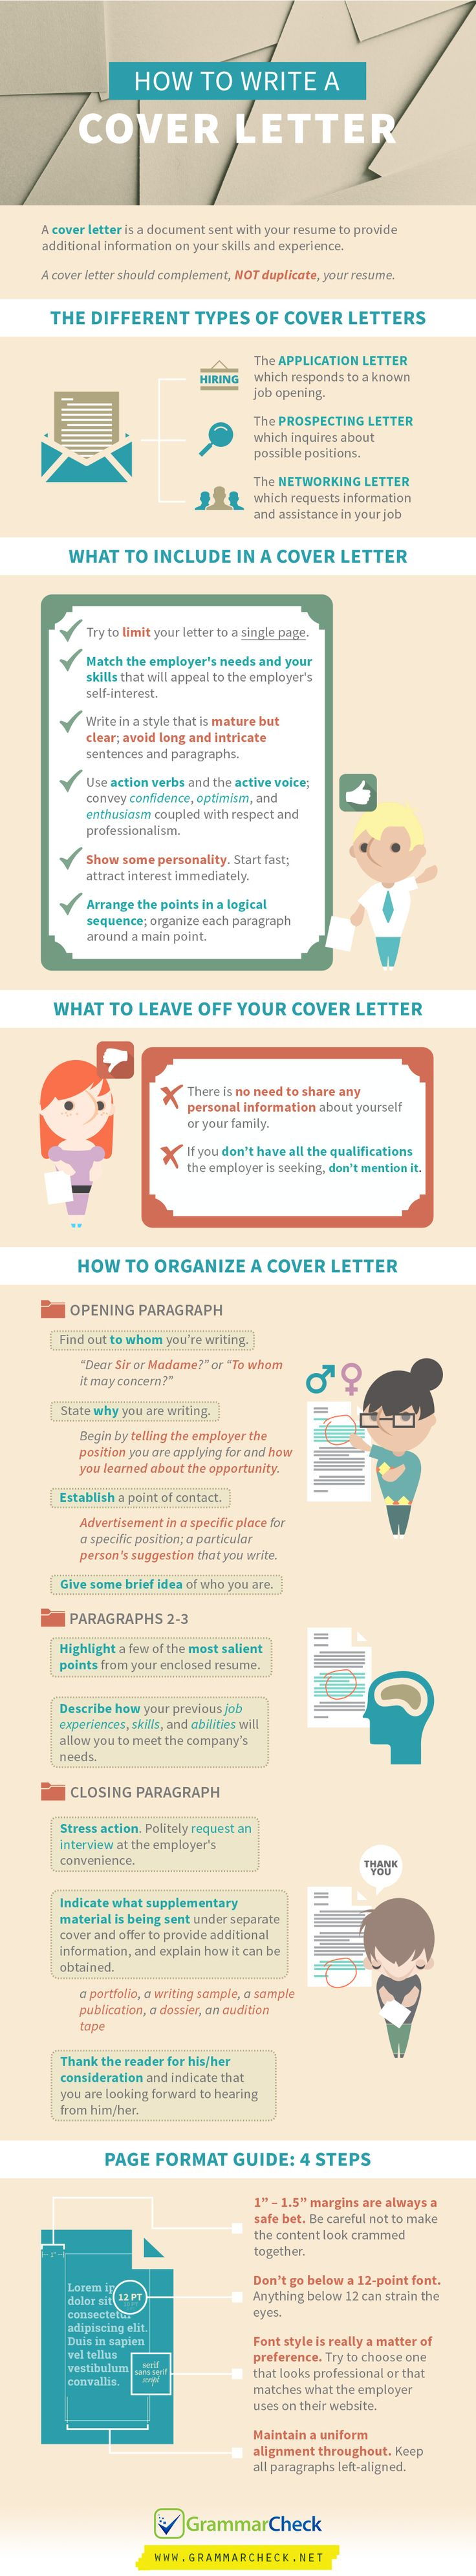 step by step guide to writing a cover letter